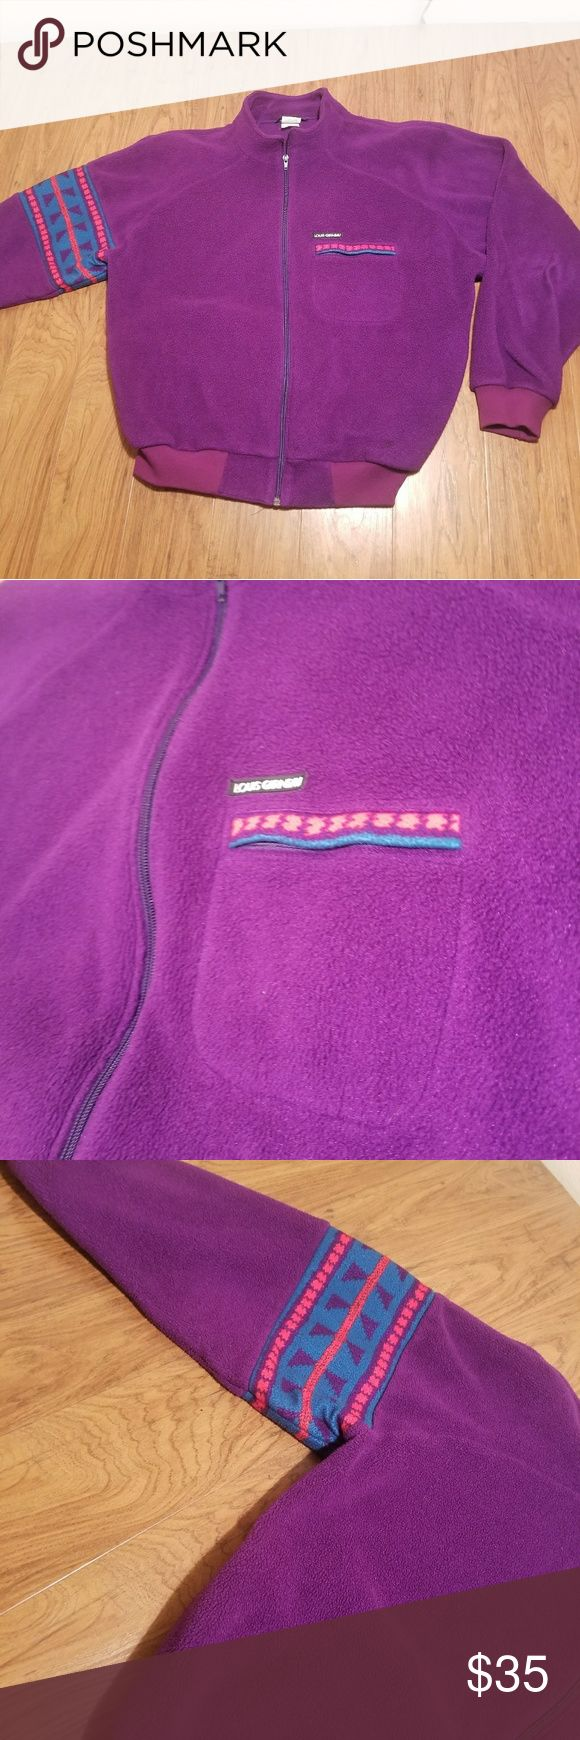 Louis Garneau Zip Up Fleece Jacket Brand: Louis Garneau Size: Mens Large Color: Purple Price: 34.99 Good condition. Any questions feel free to ask. We give full refunds if we can't solve a major problem.  Thank you.  From: Bnbllc louis garneau Jackets & Coats